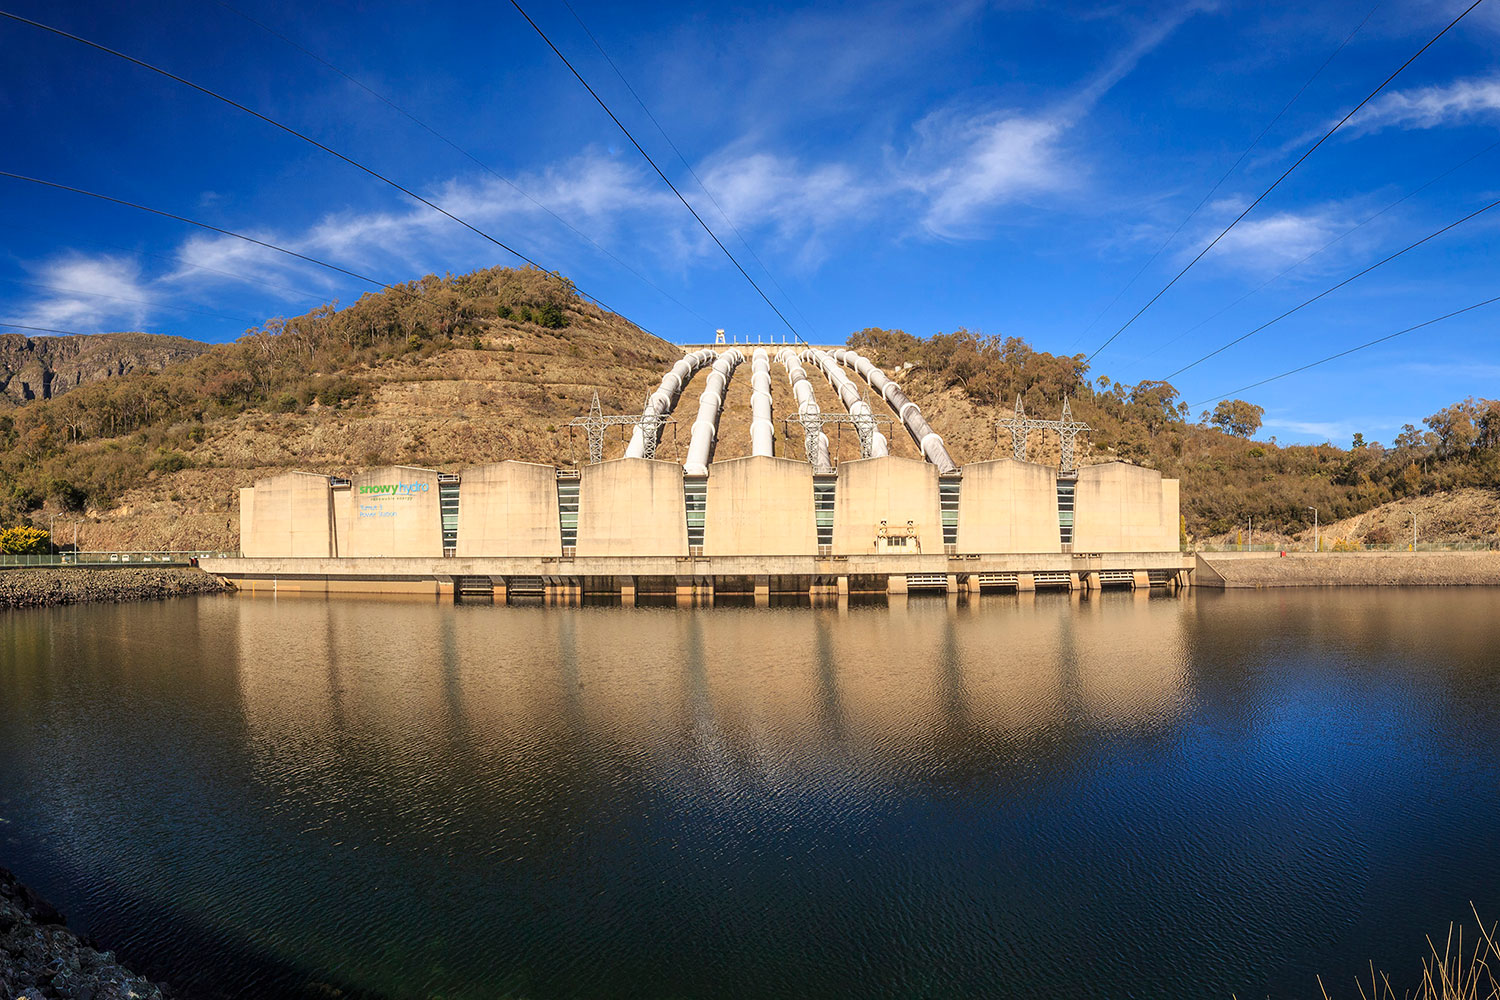 The Tumut power station. (Image: Snowy Hydro)